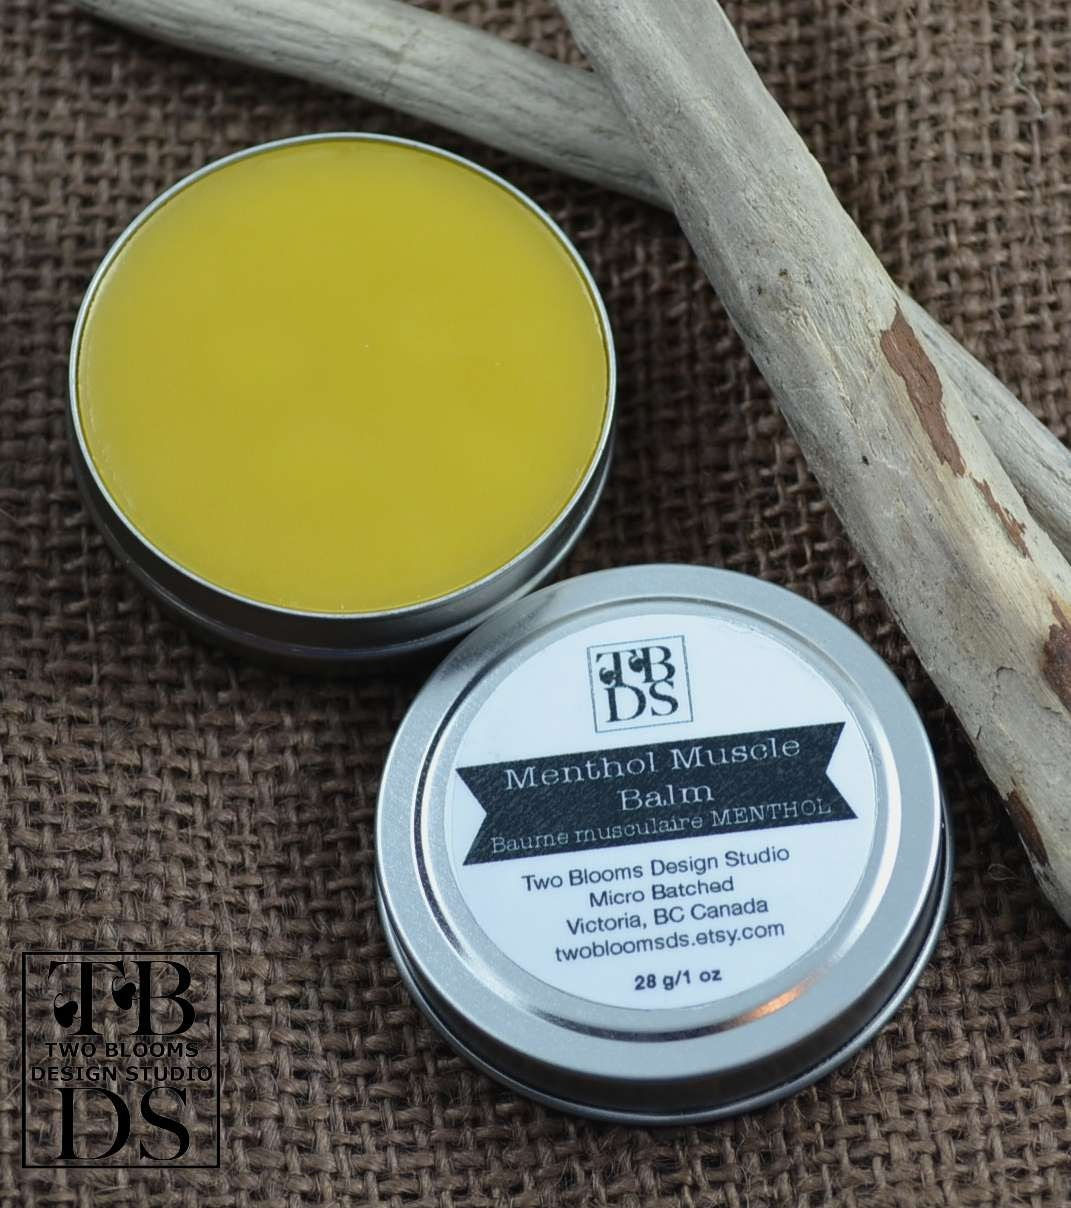 Sore Muscle Rub - Menthol Muscle Balm - Beeswax Balm - Pain Relief Balm - Natural Balm - Beeswax Balm Victoria, BC Vancouver Island Canada - twobloomsds